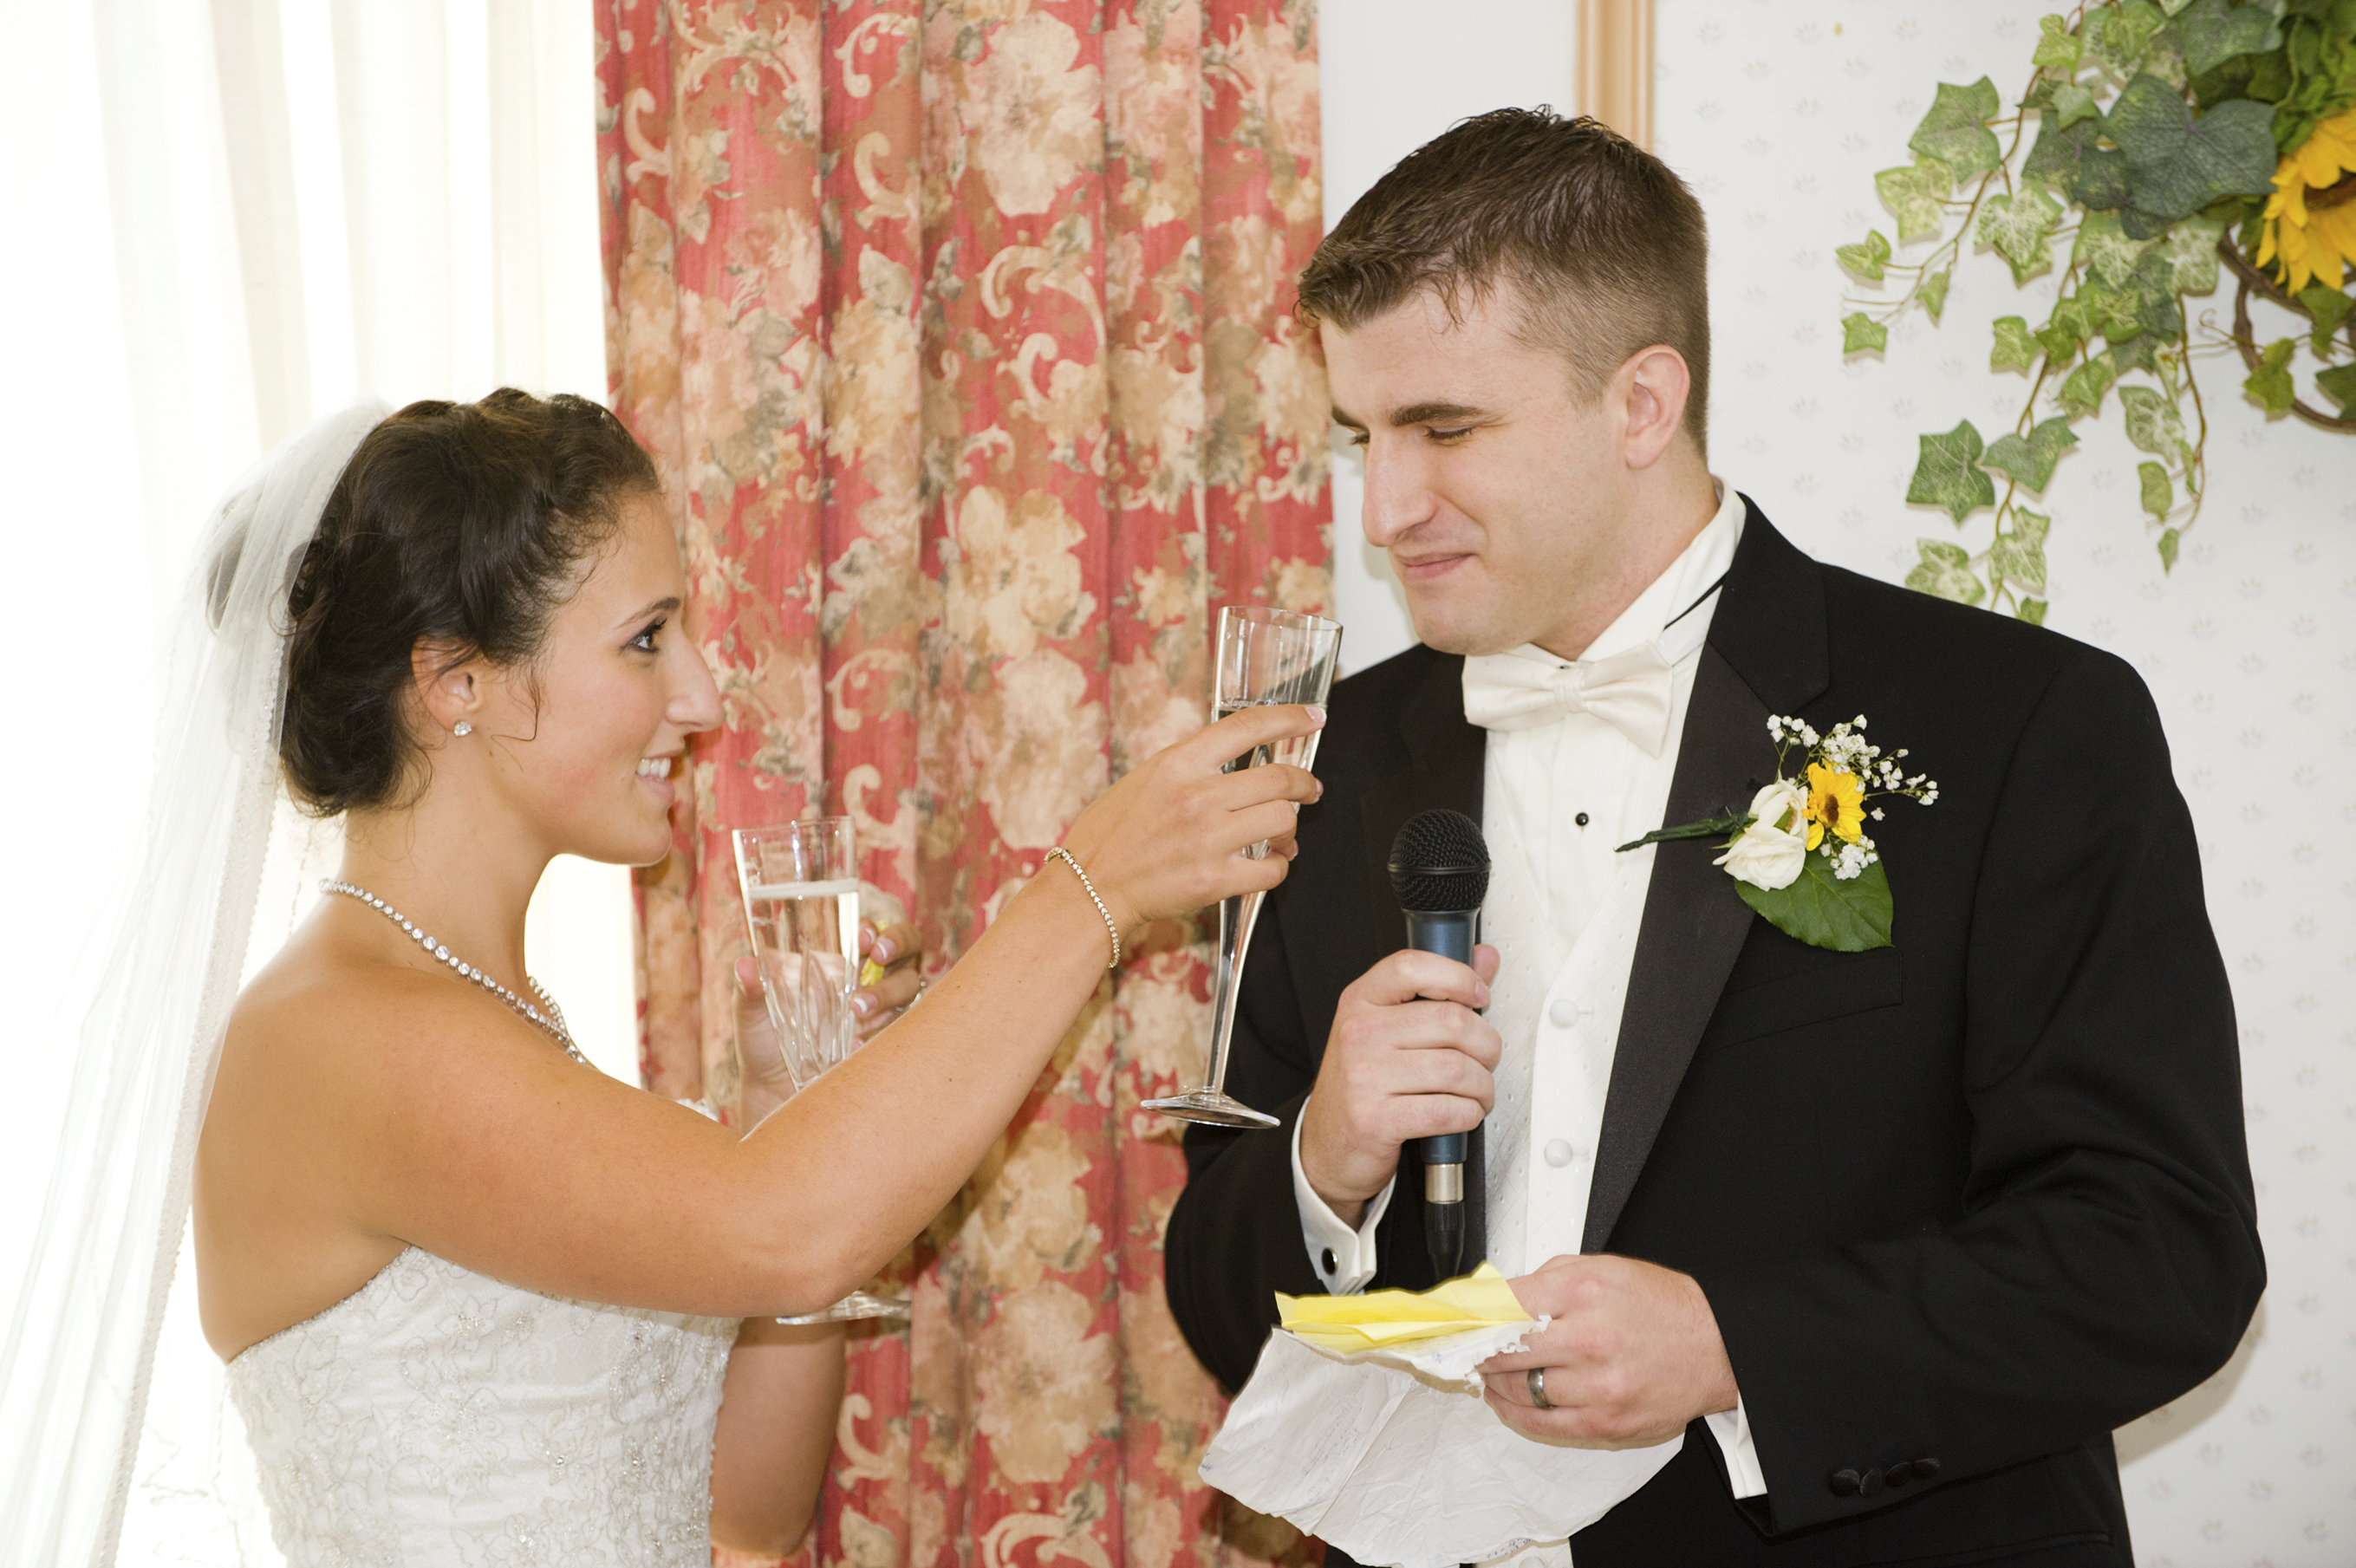 Bride Wedding Speech Ideas: What To Include In A Groom's Wedding Toast